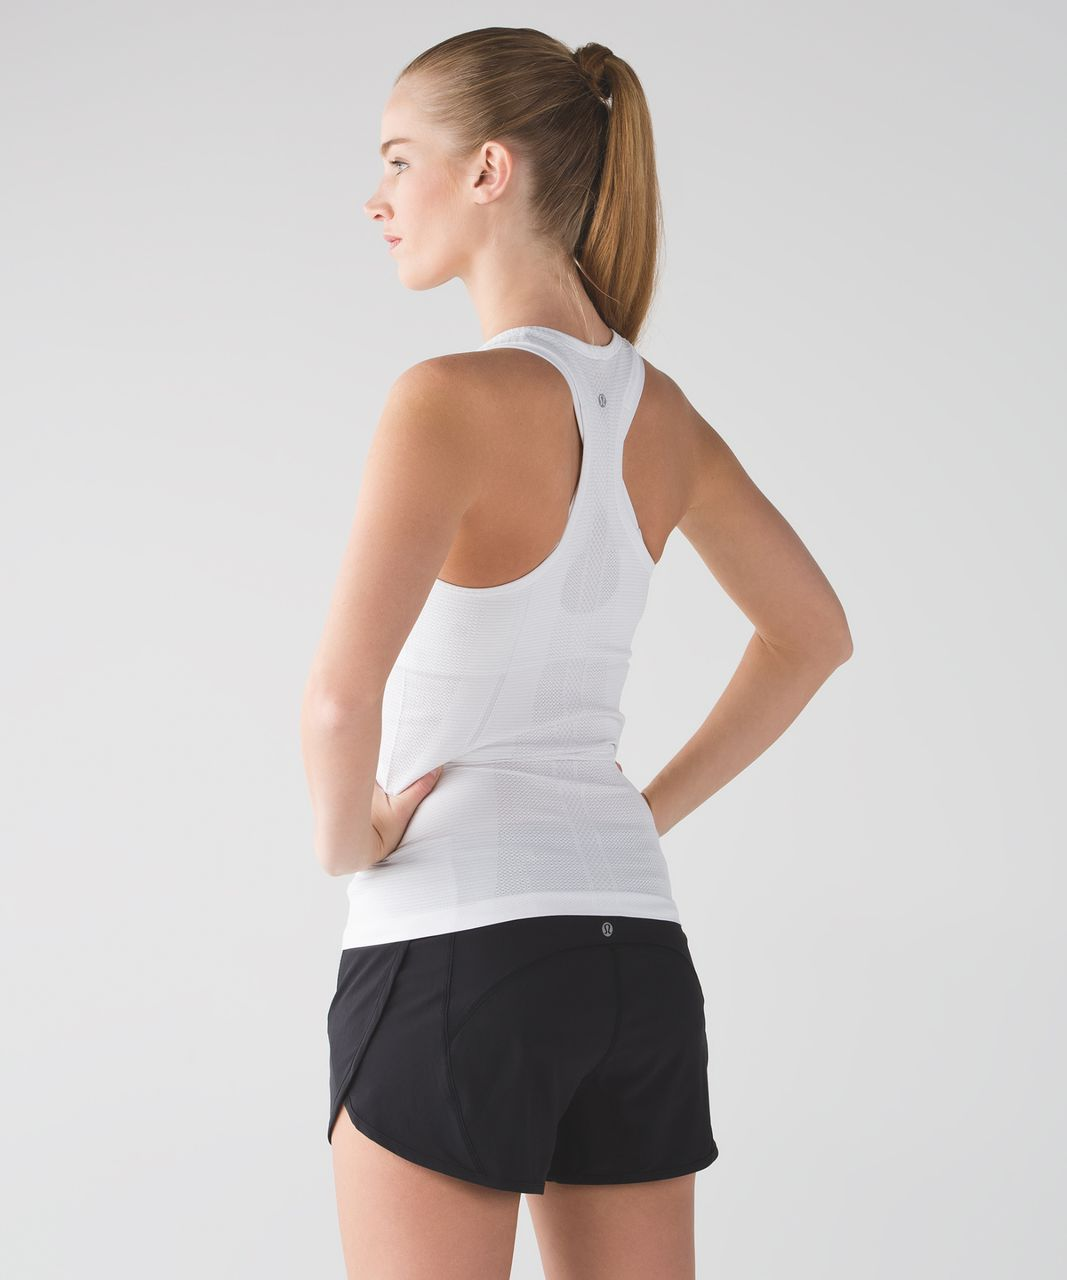 Lululemon Real Quick Short - Black